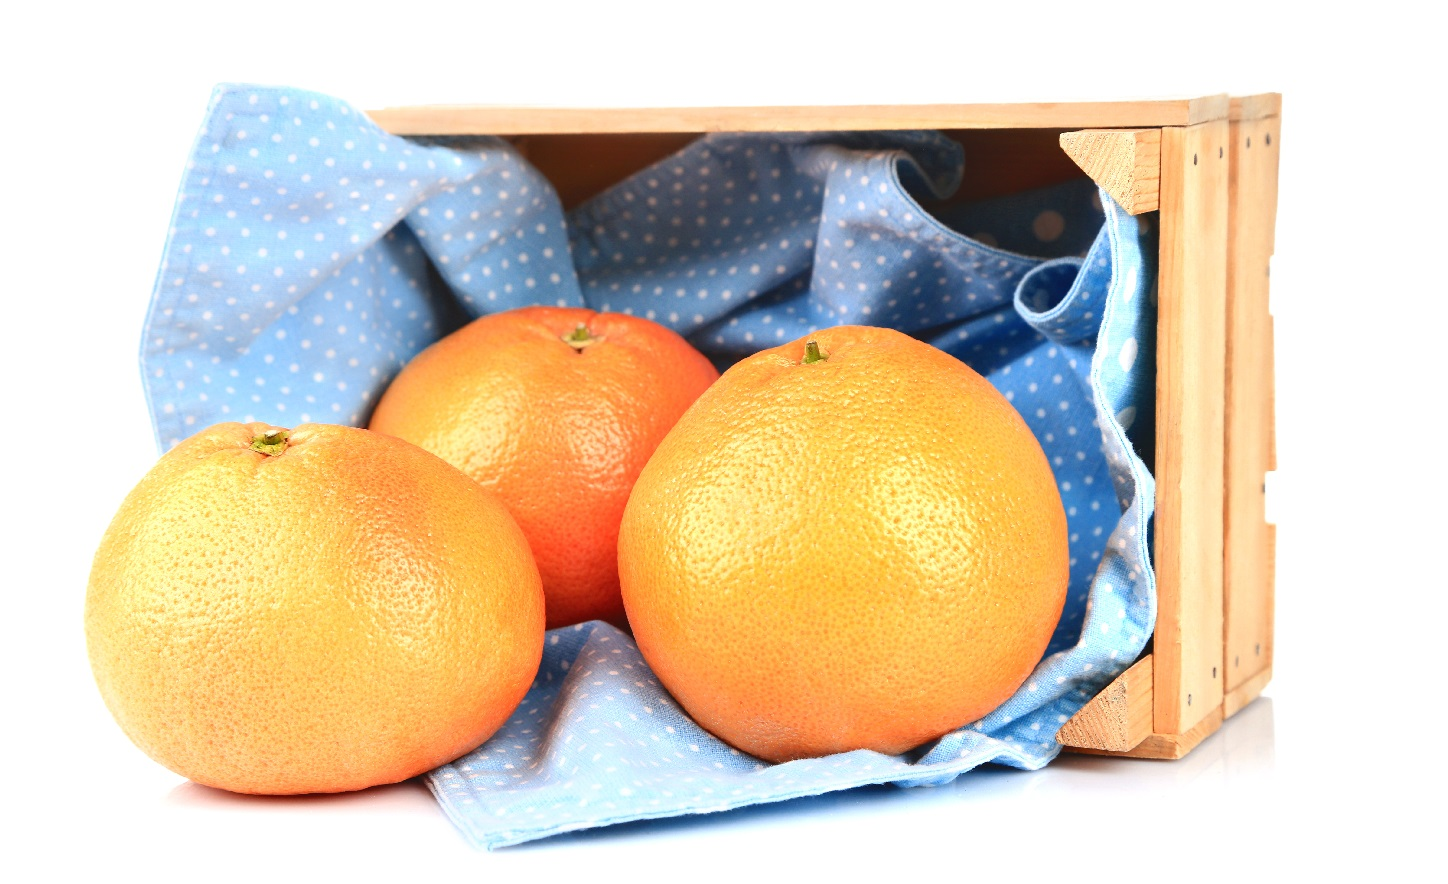 Looking for the Perfect Gift? How About Sending Texas Grapefruit by Mail!